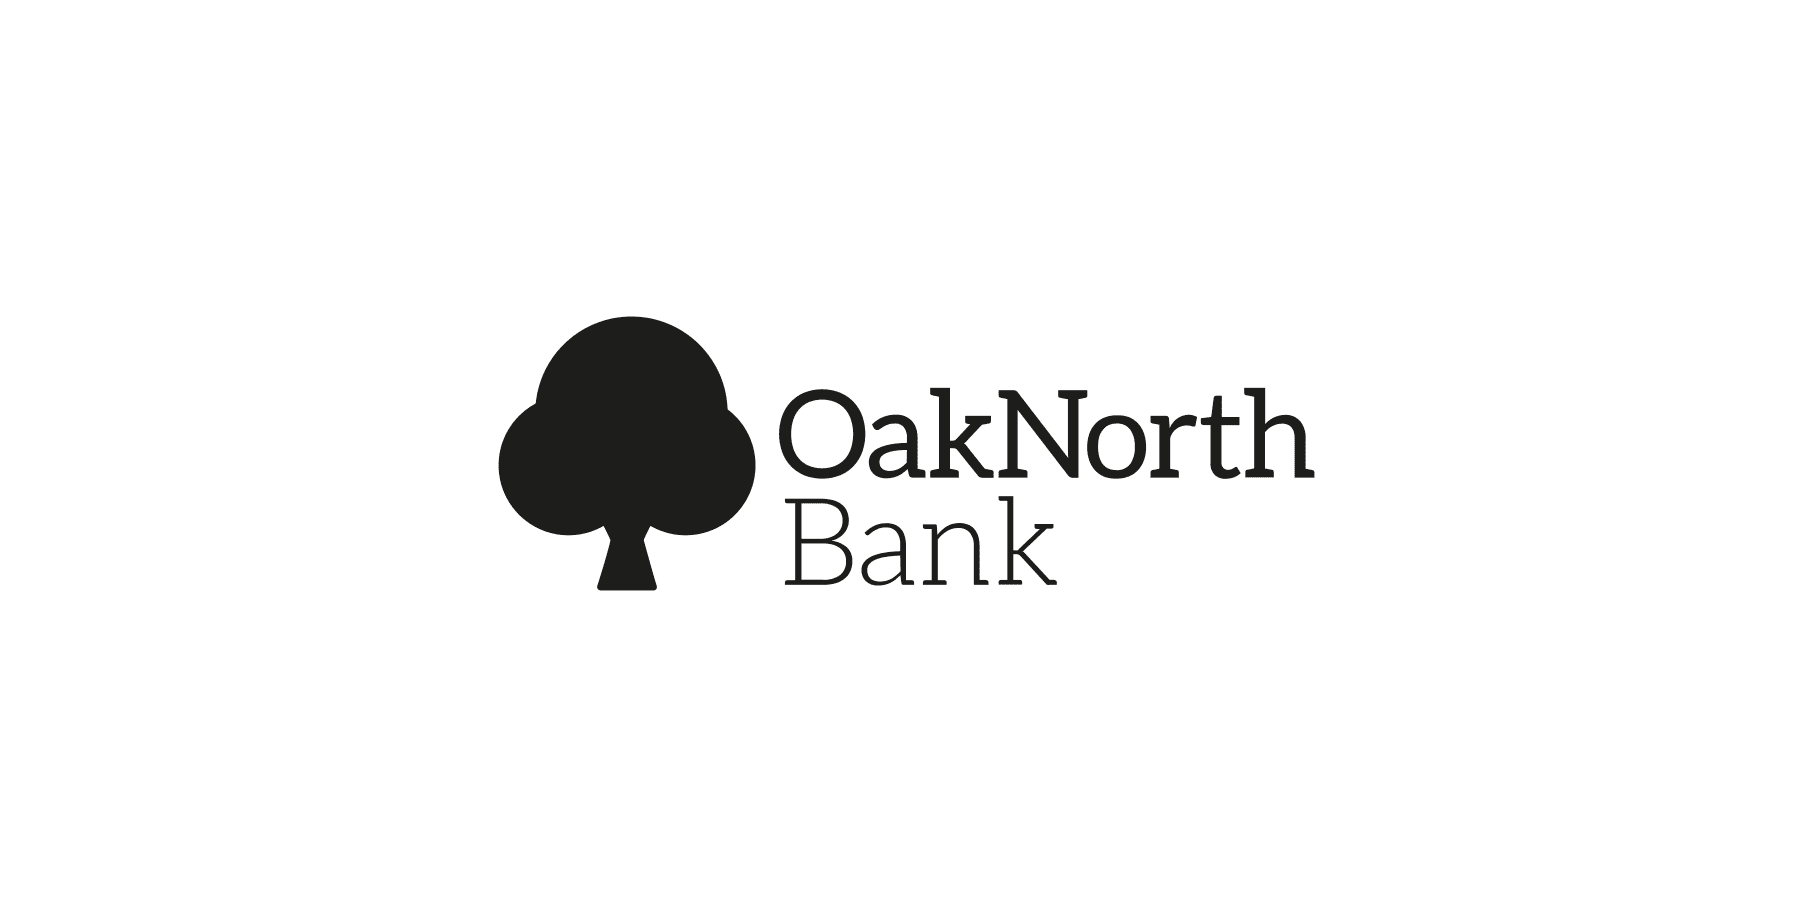 Oak North Bank